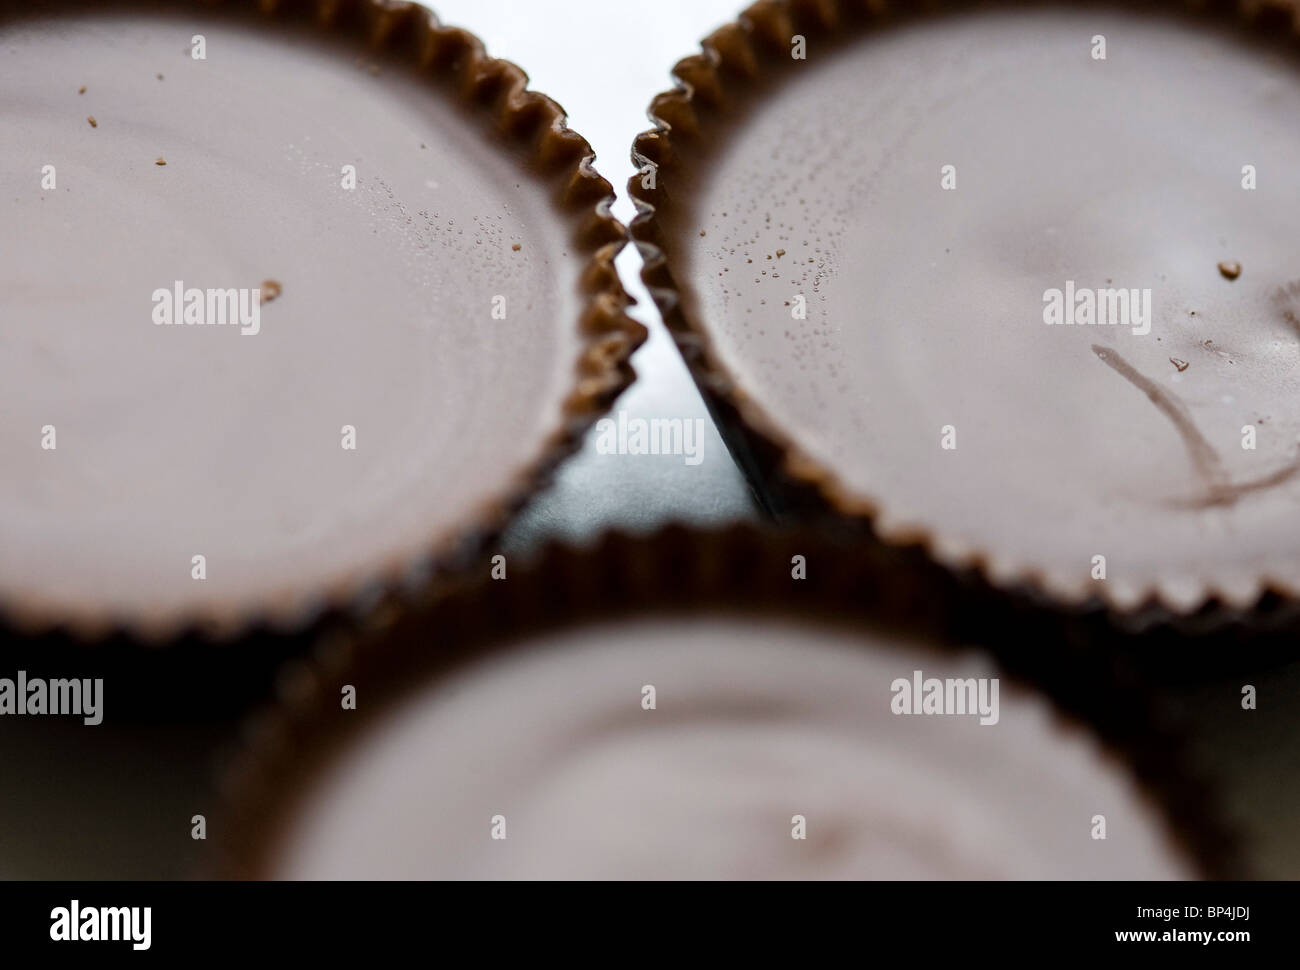 Reeses Peanut Butter Cups. - Stock Image